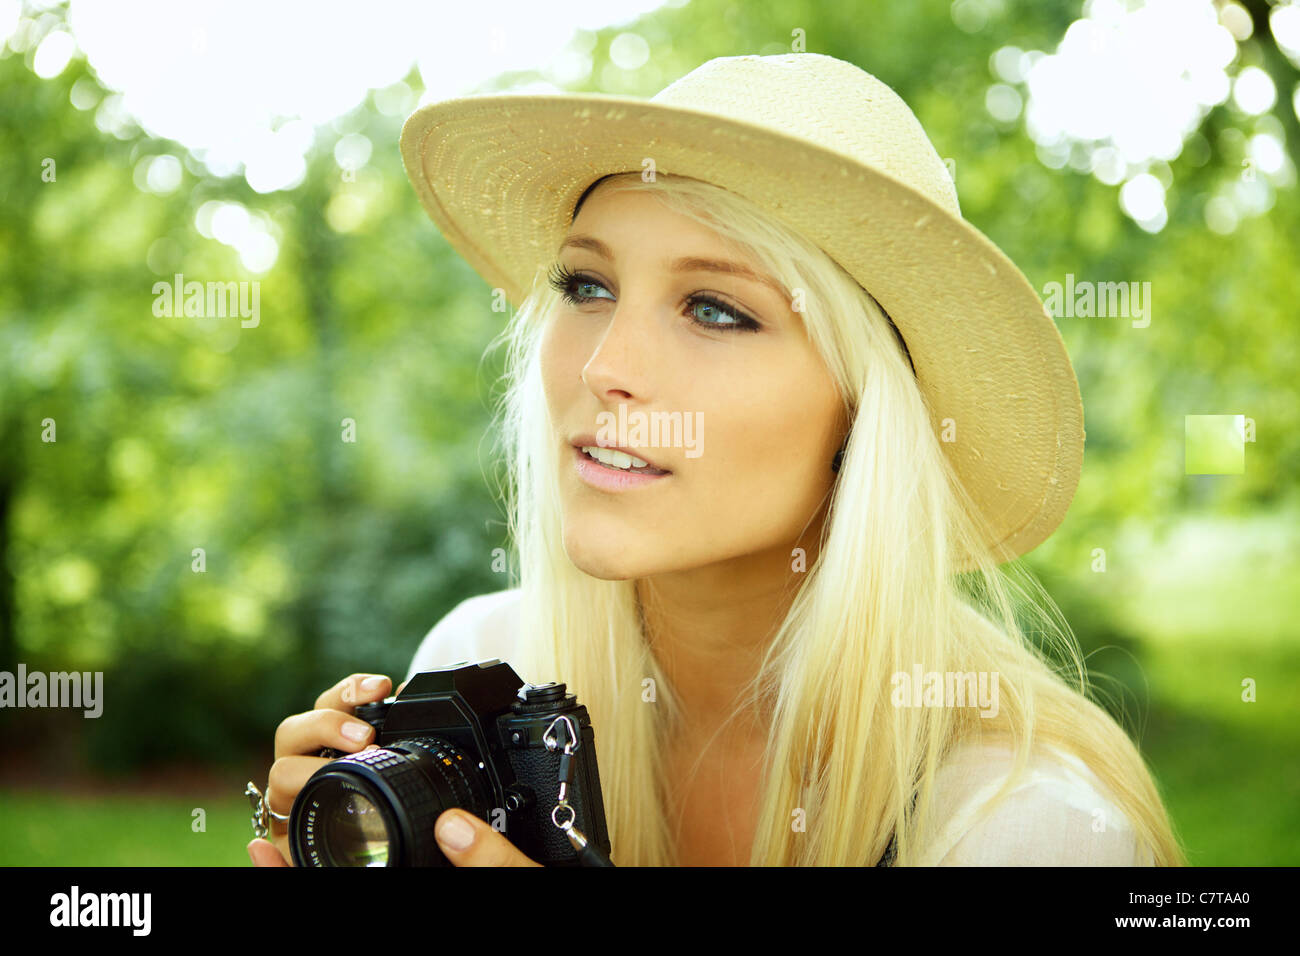 Girl with an old analog camera scouting for subjects.  - Stock Image